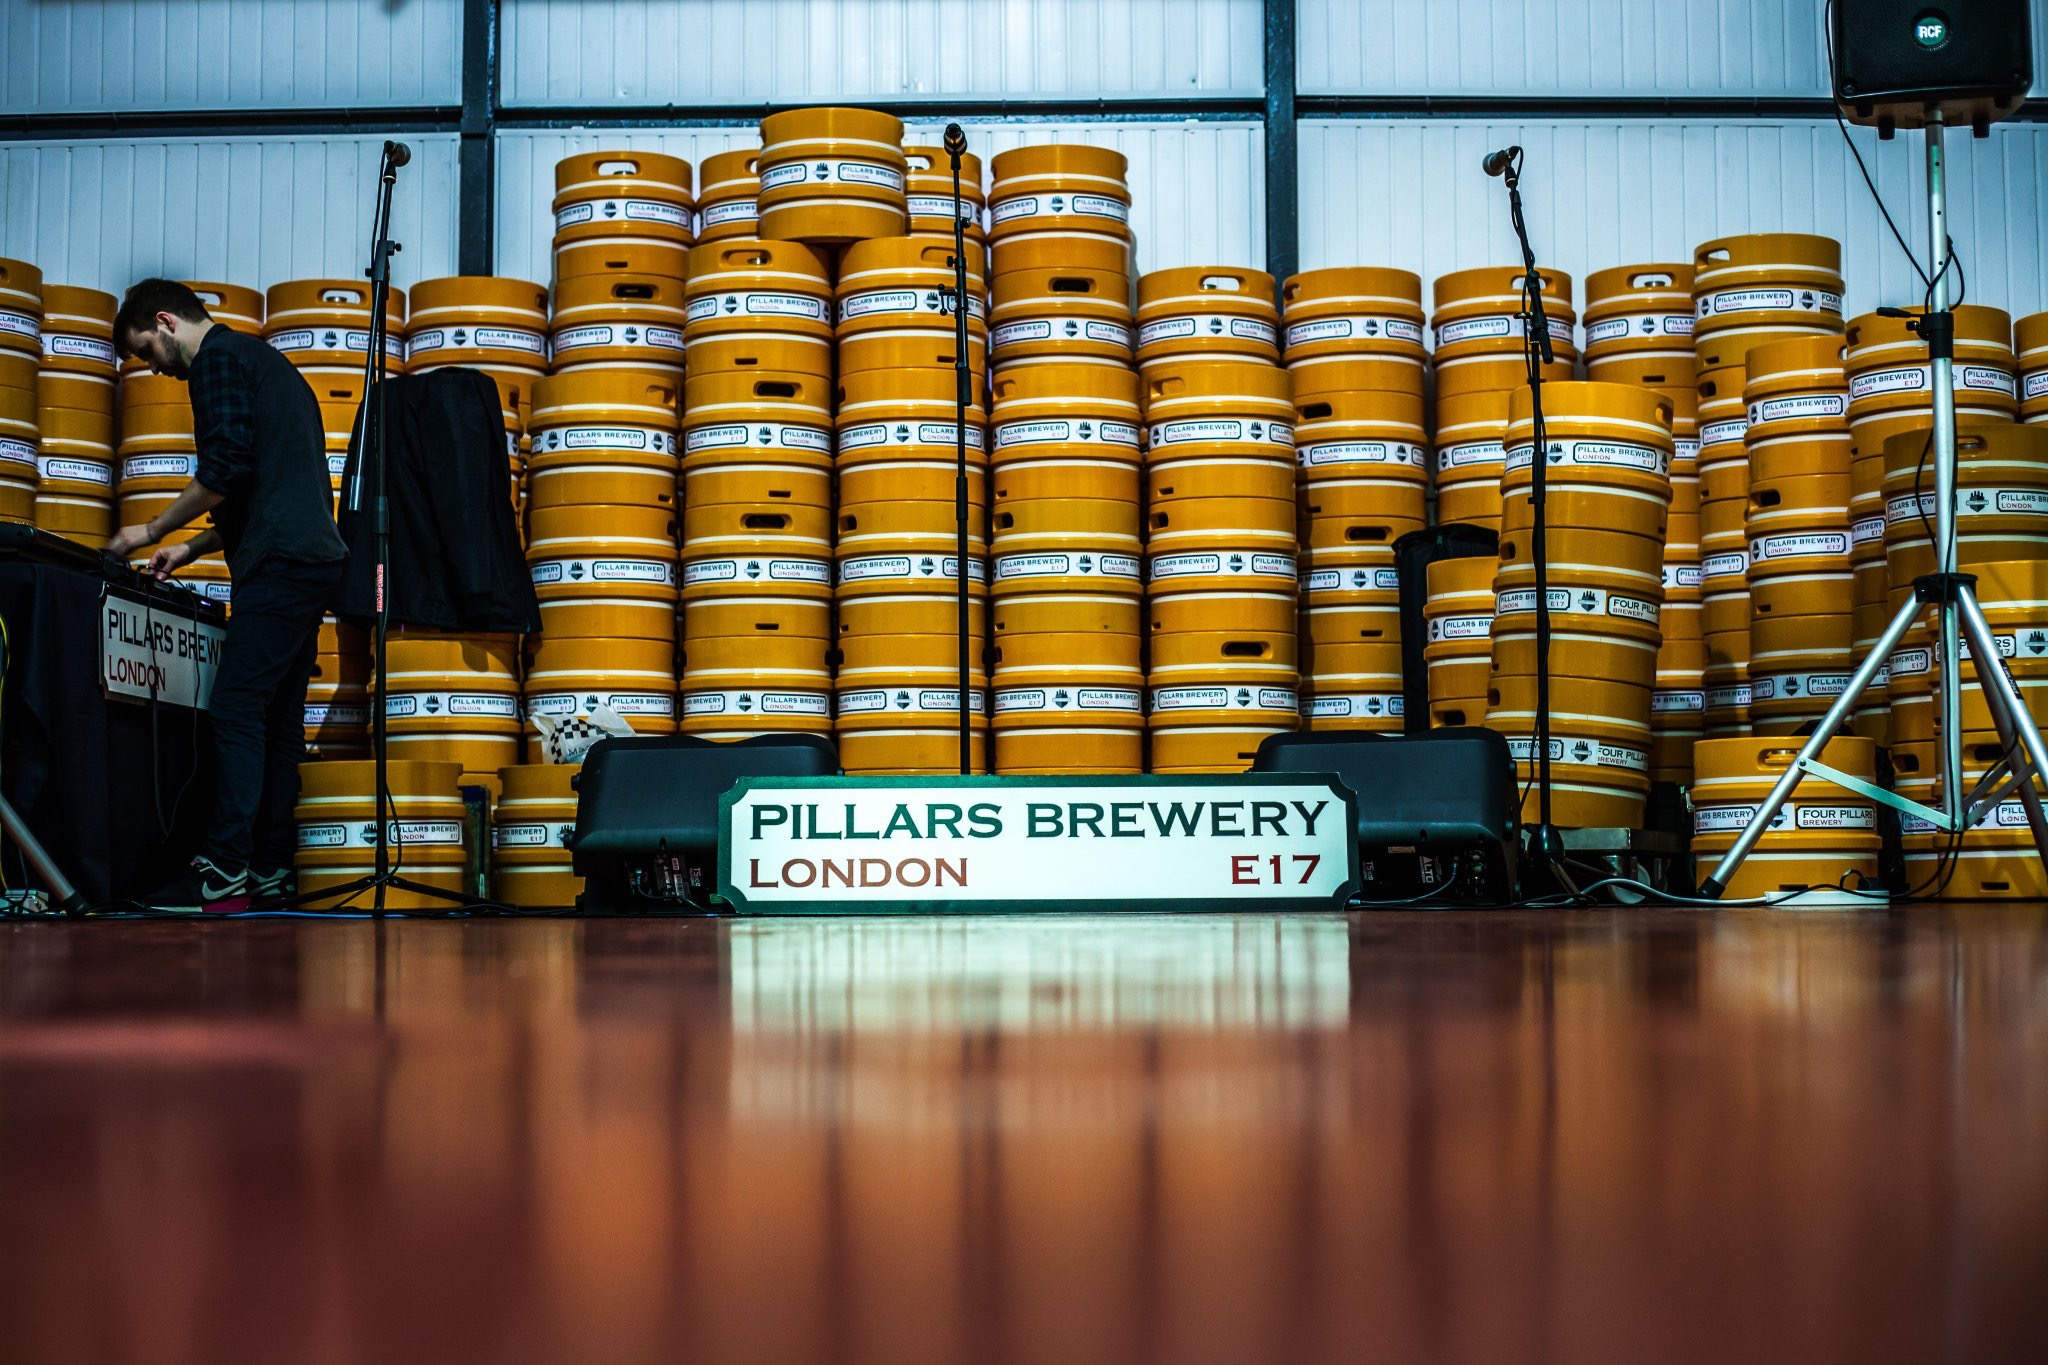 pillars brewery